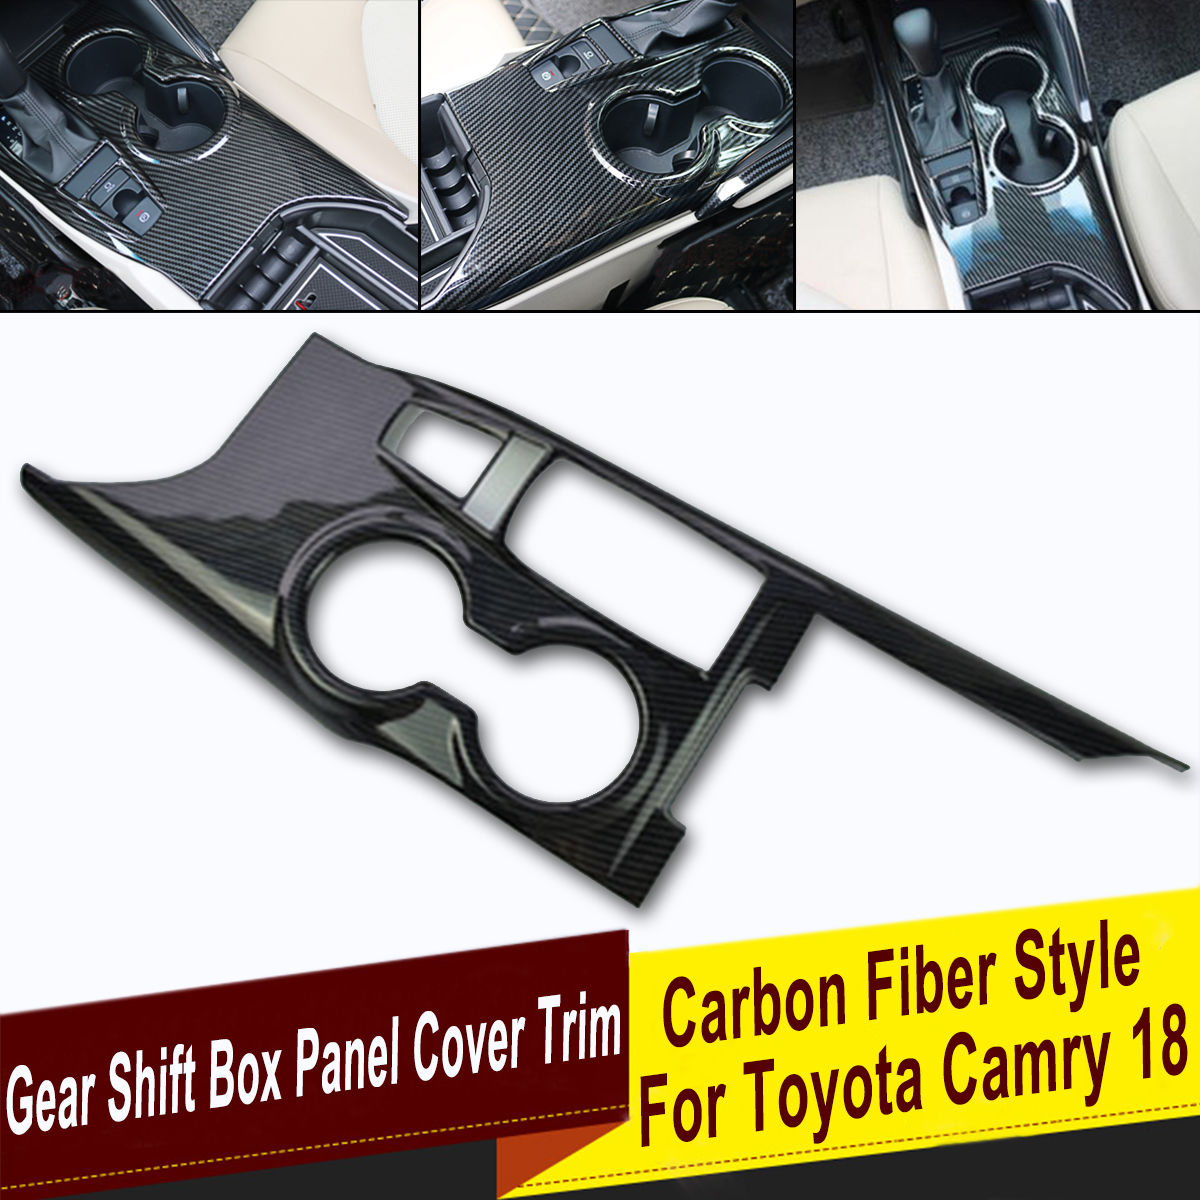 Carbon Fiber Style Interior Center Console Gear Shift Box Panel Cover Trim for Toyota Camry 18 Decorative Car Accessories interior for chevrolet camaro 2016 2017 abs carbon fiber style transmission shift gear panel cover trim 1 piece page 9